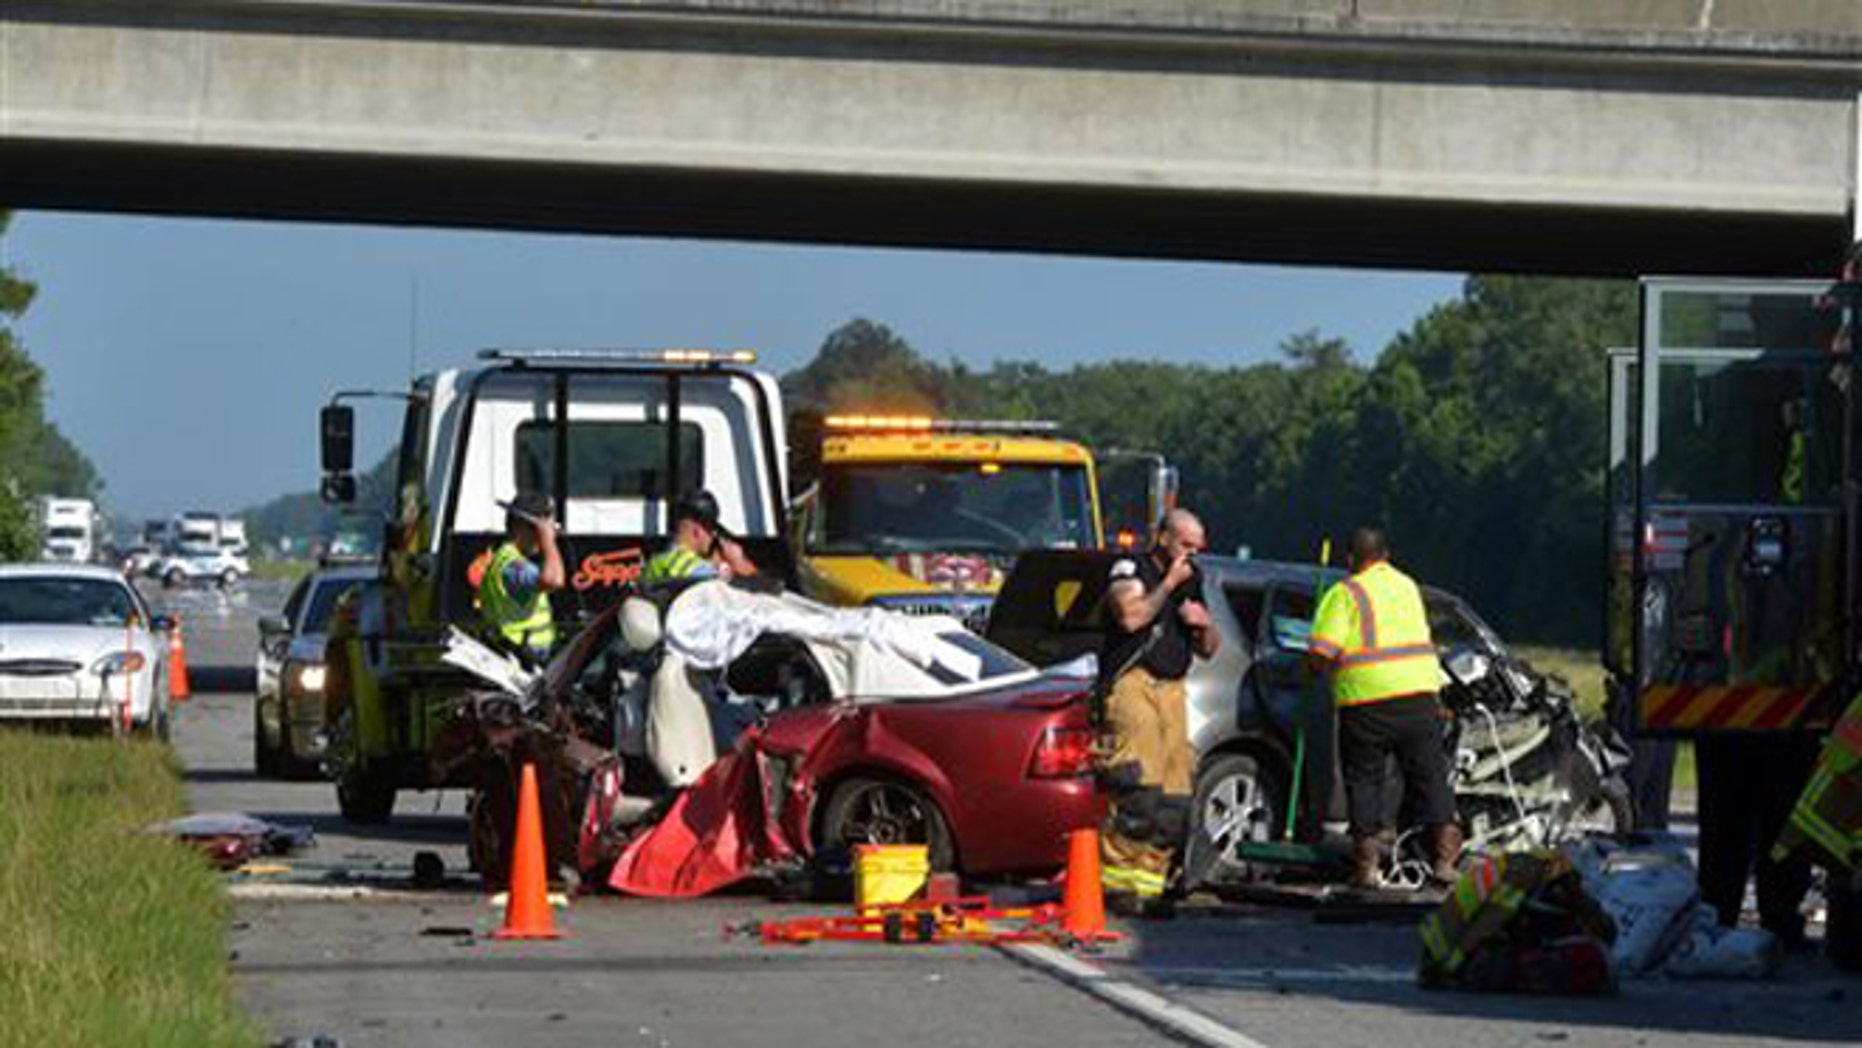 Police investigate at the scene of a head-on crash that killed five people early Wednesday, June 22, 2016, on Interstate 16 near exit 155 in Pooler, Ga.